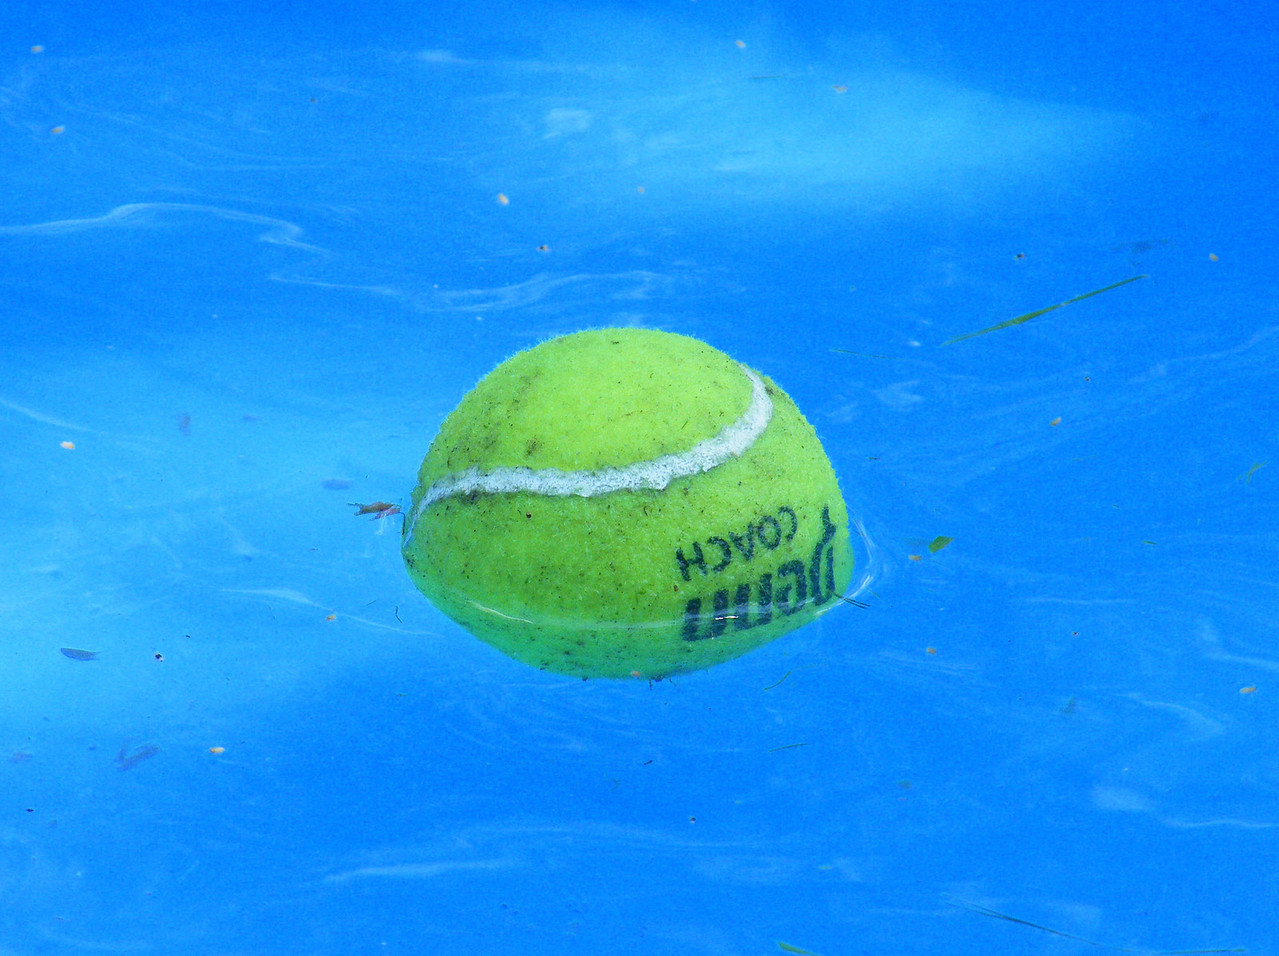 The infamous tennis ball.